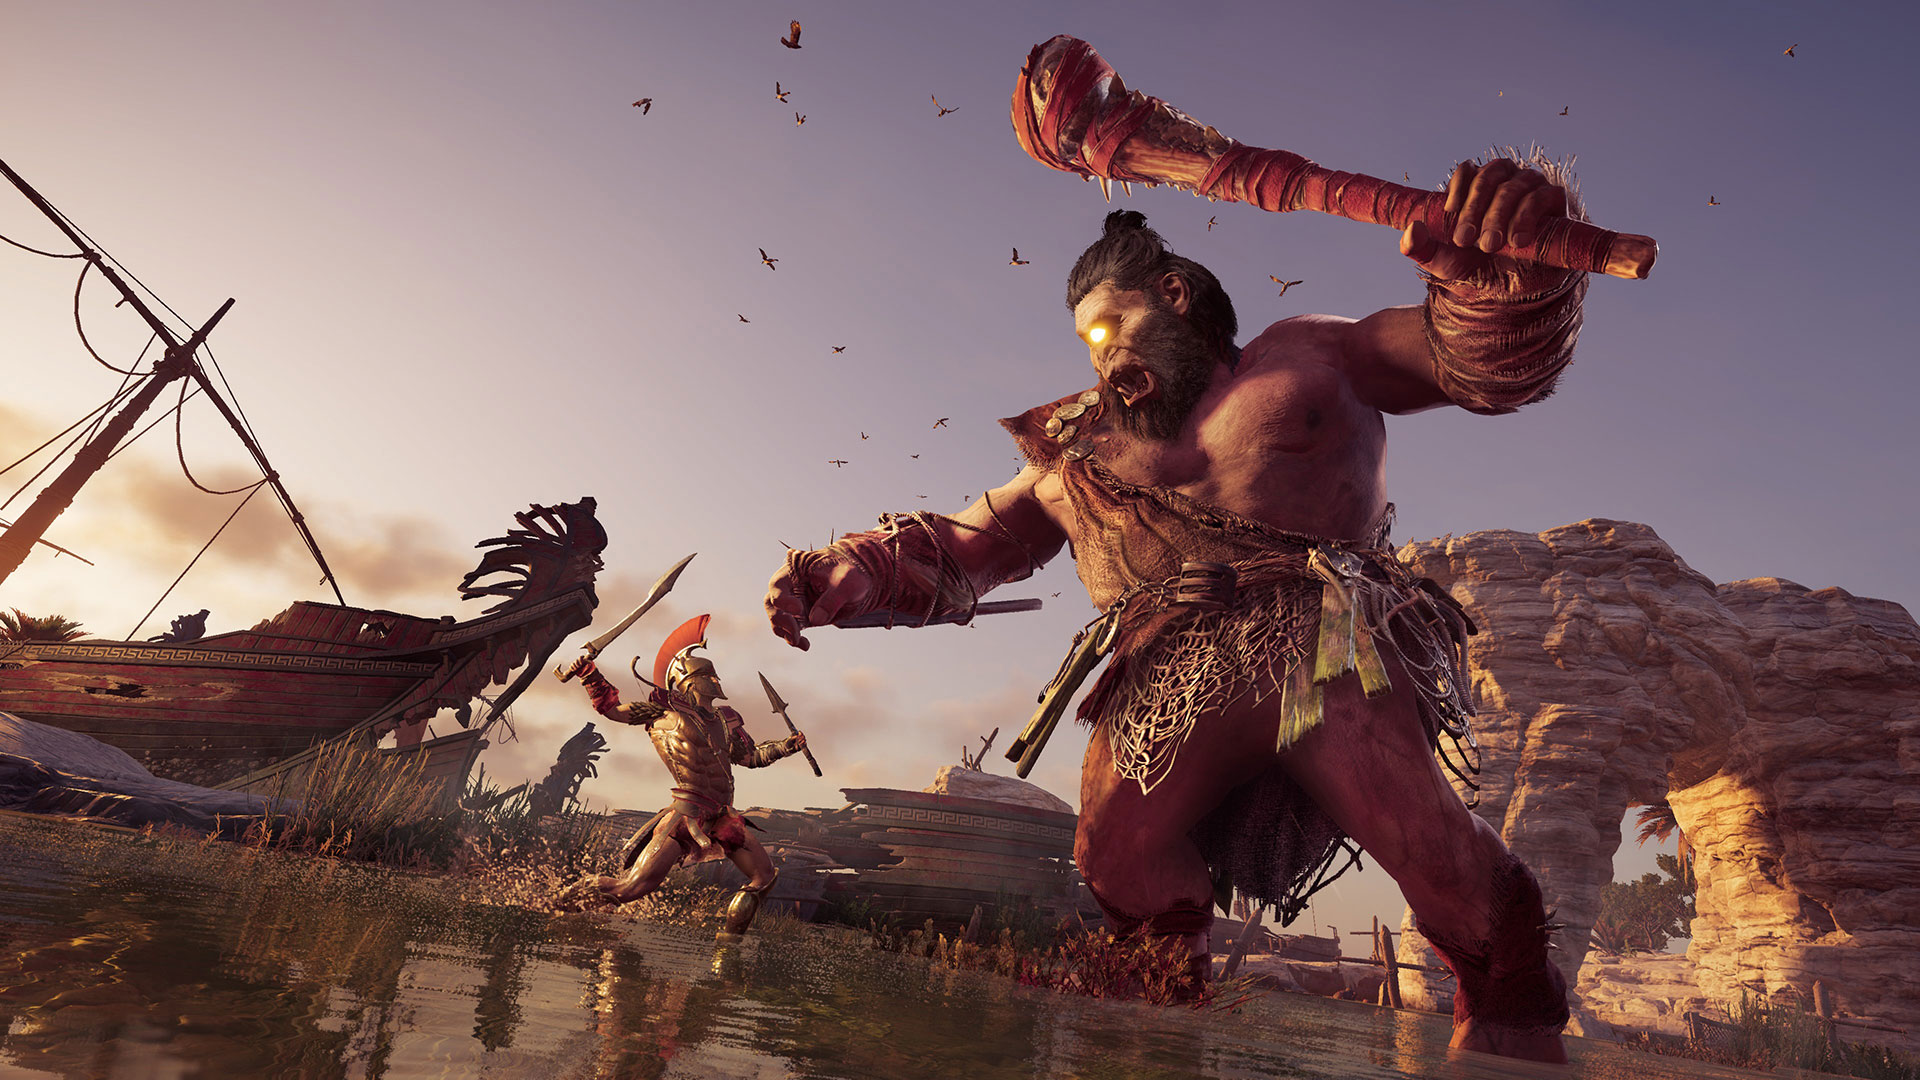 Assassin's Creed Odyssey – Free Content and Updates Coming in November